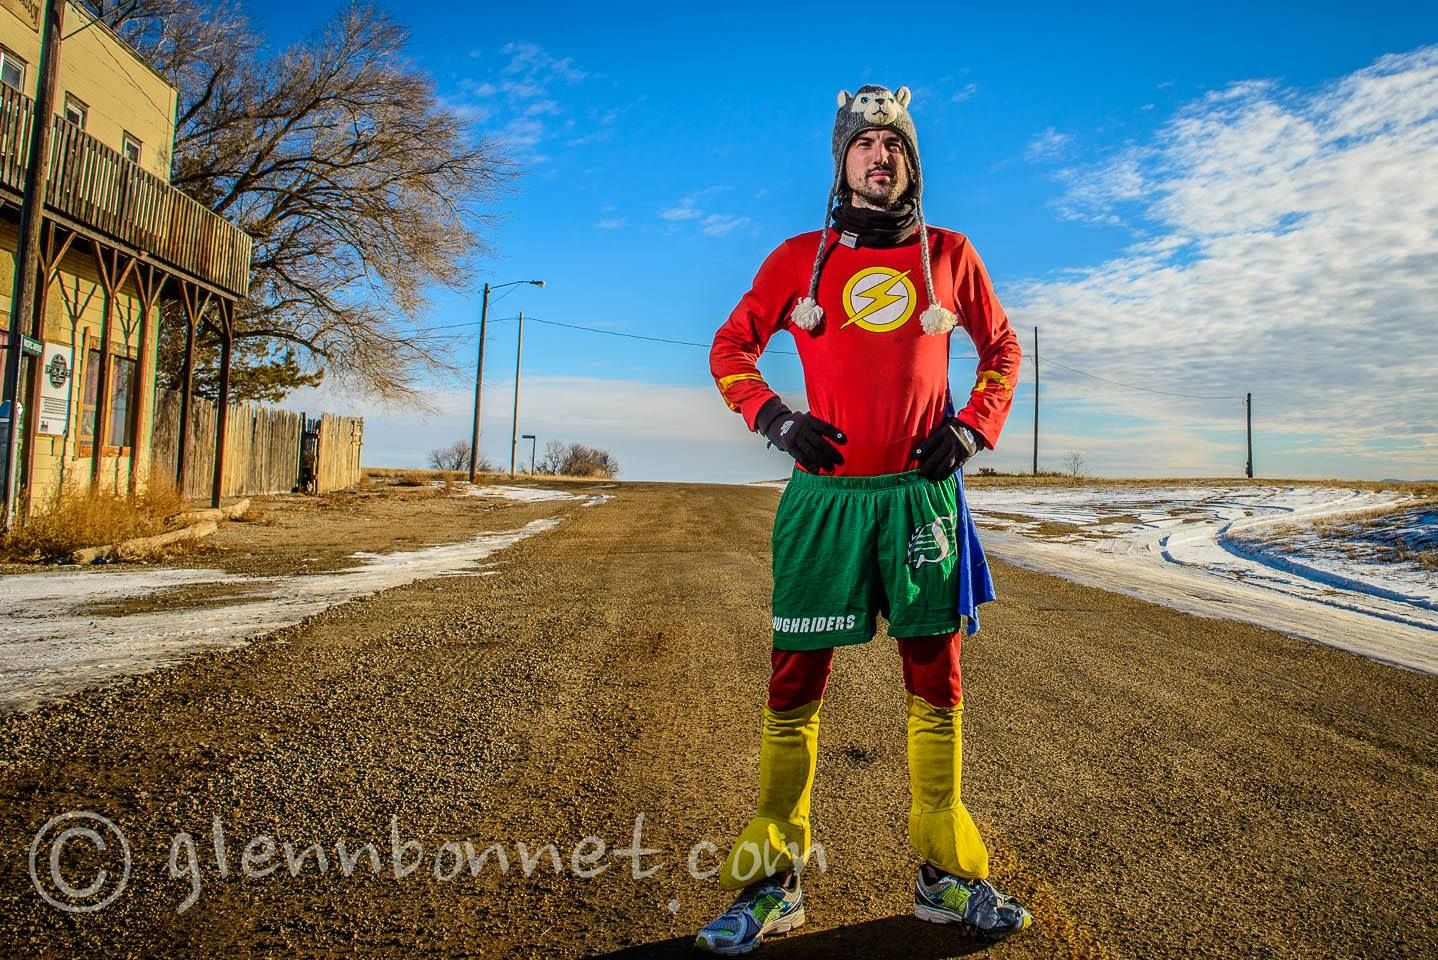 Comic book Superhero the Flash runs 5,000 miles - unsupported - across Canada